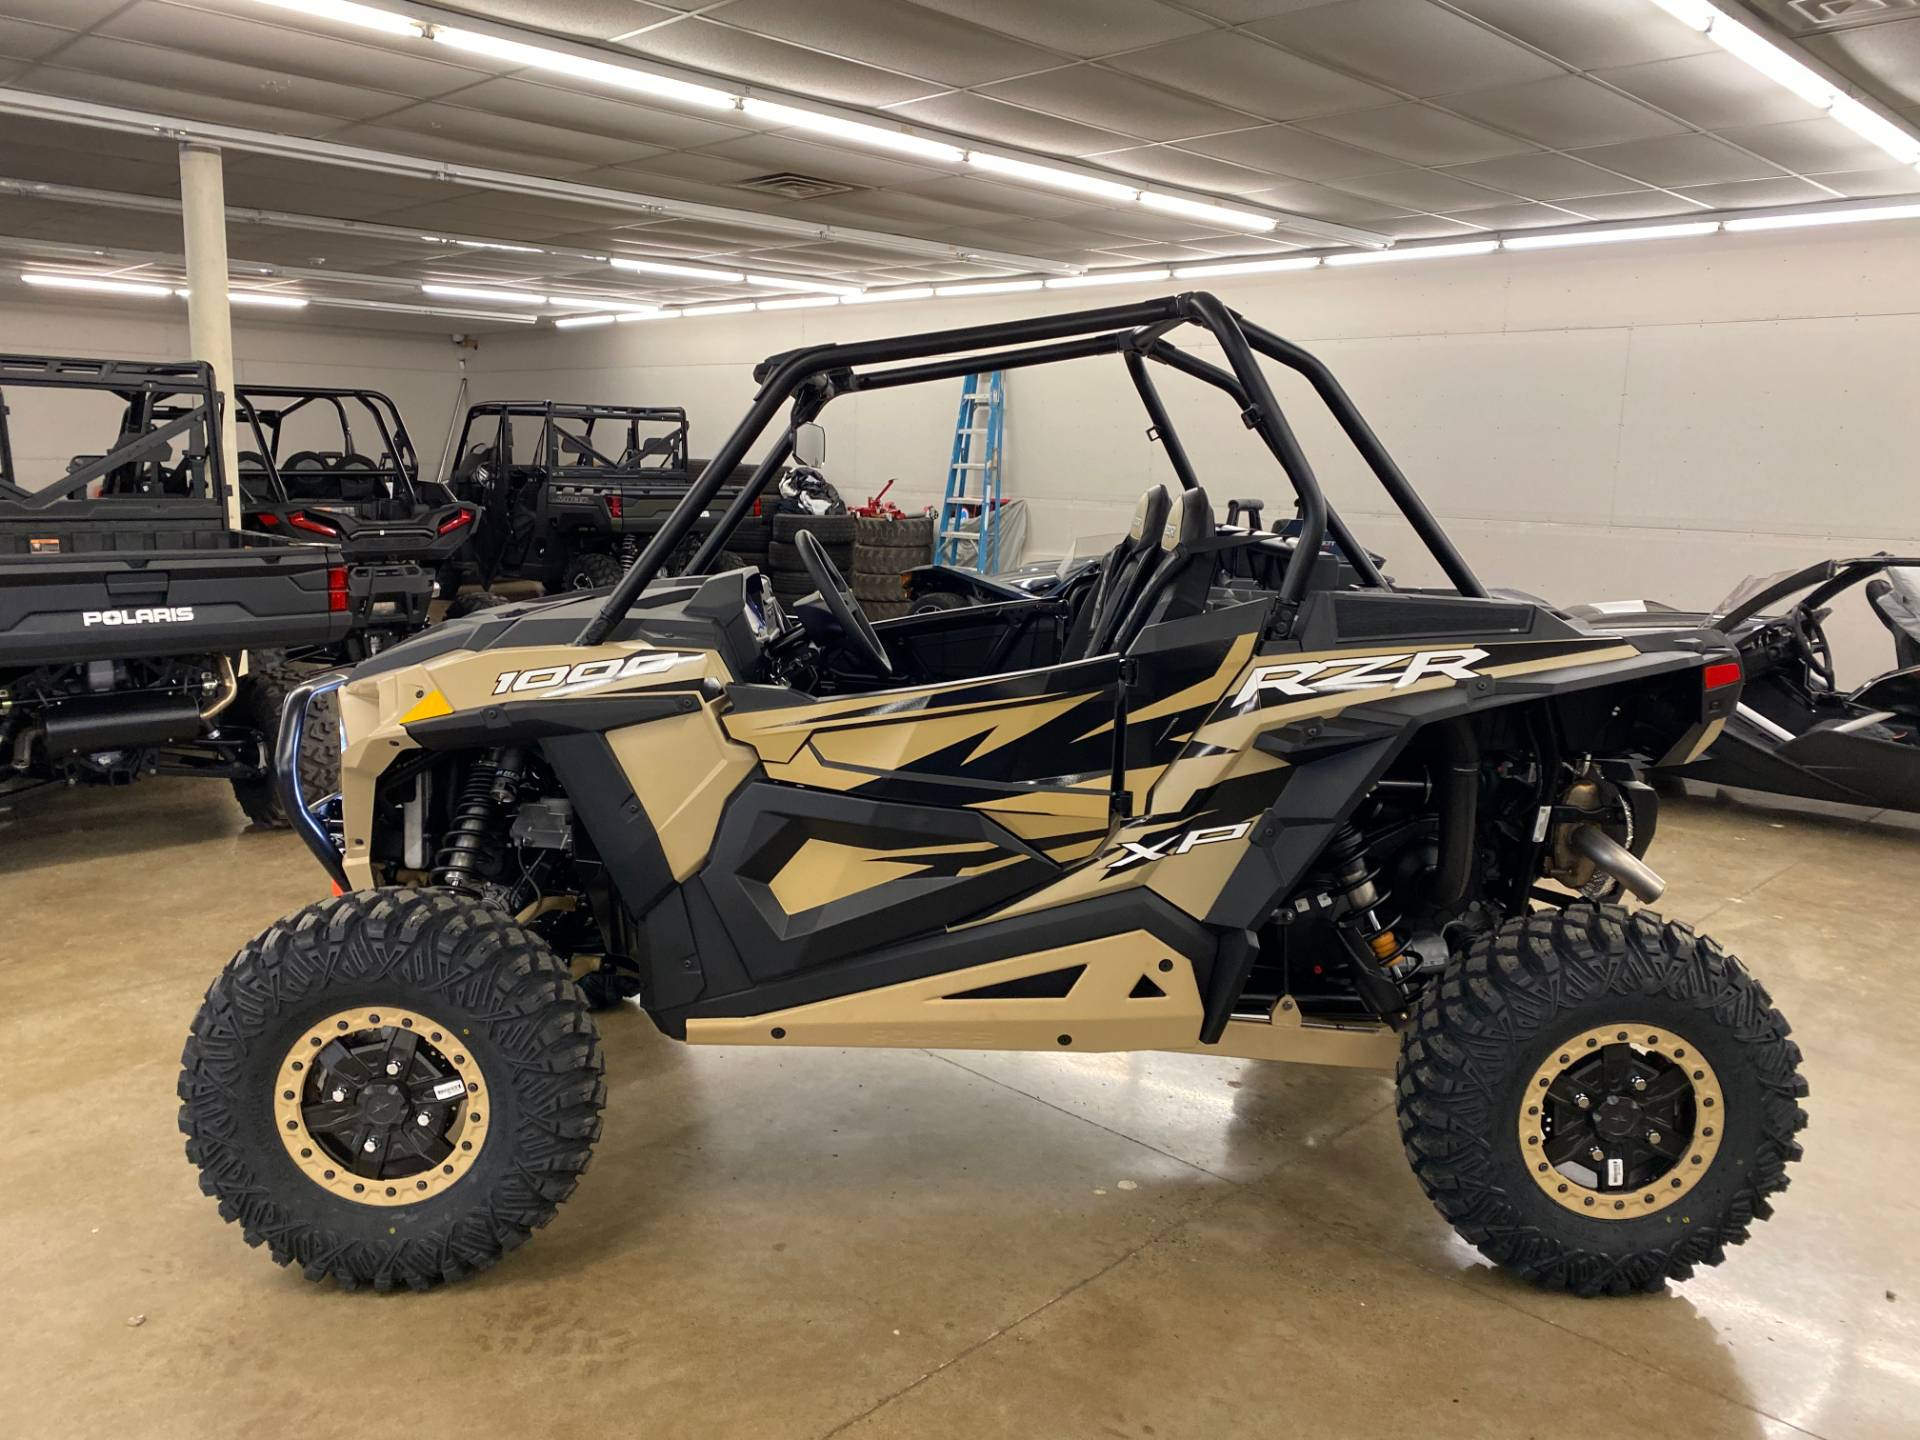 2020 Polaris RZR XP 1000 Trails & Rocks in Chicora, Pennsylvania - Photo 7